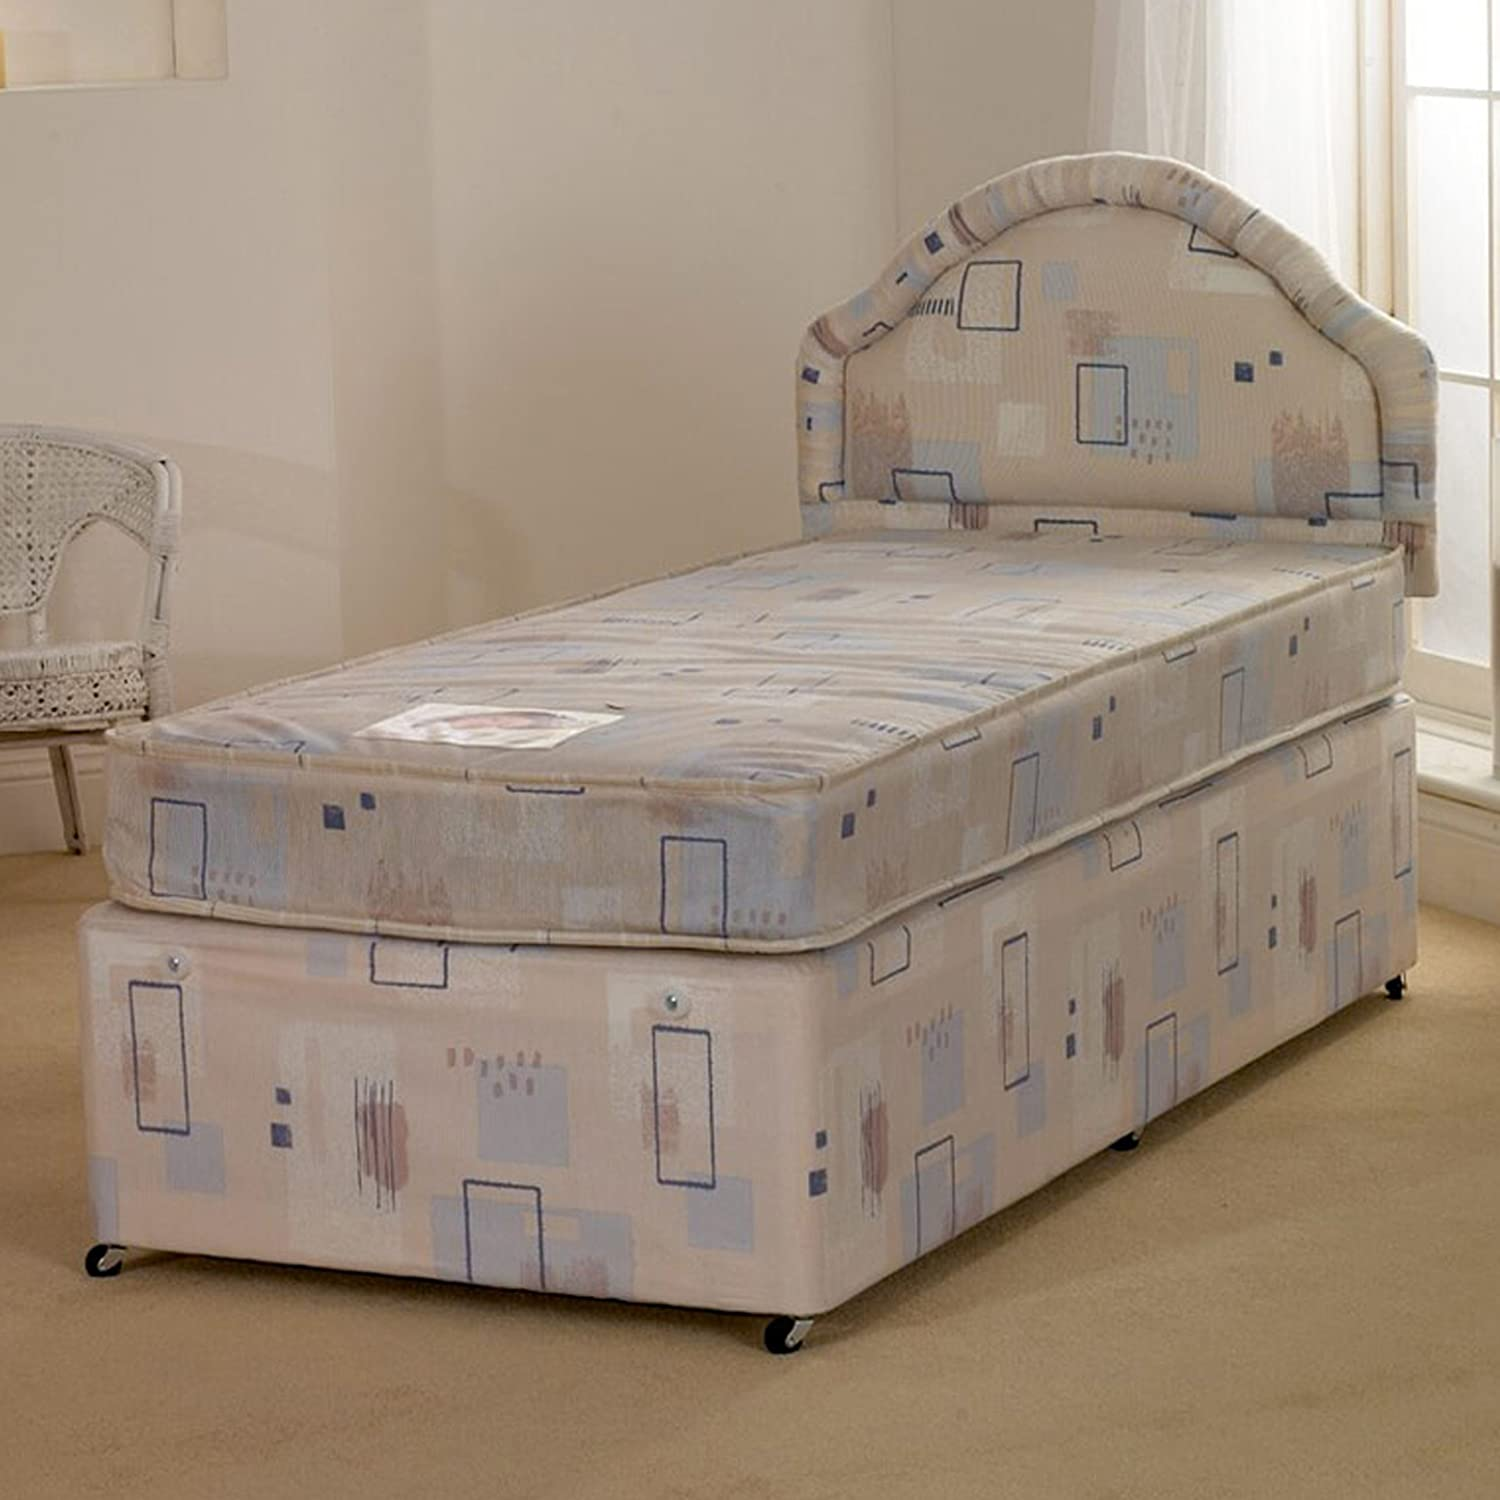 Deluxe Beds Ltd Superb Value 3ft Single Albi Divan Bed With Mattress - No Headboard - No Drawers